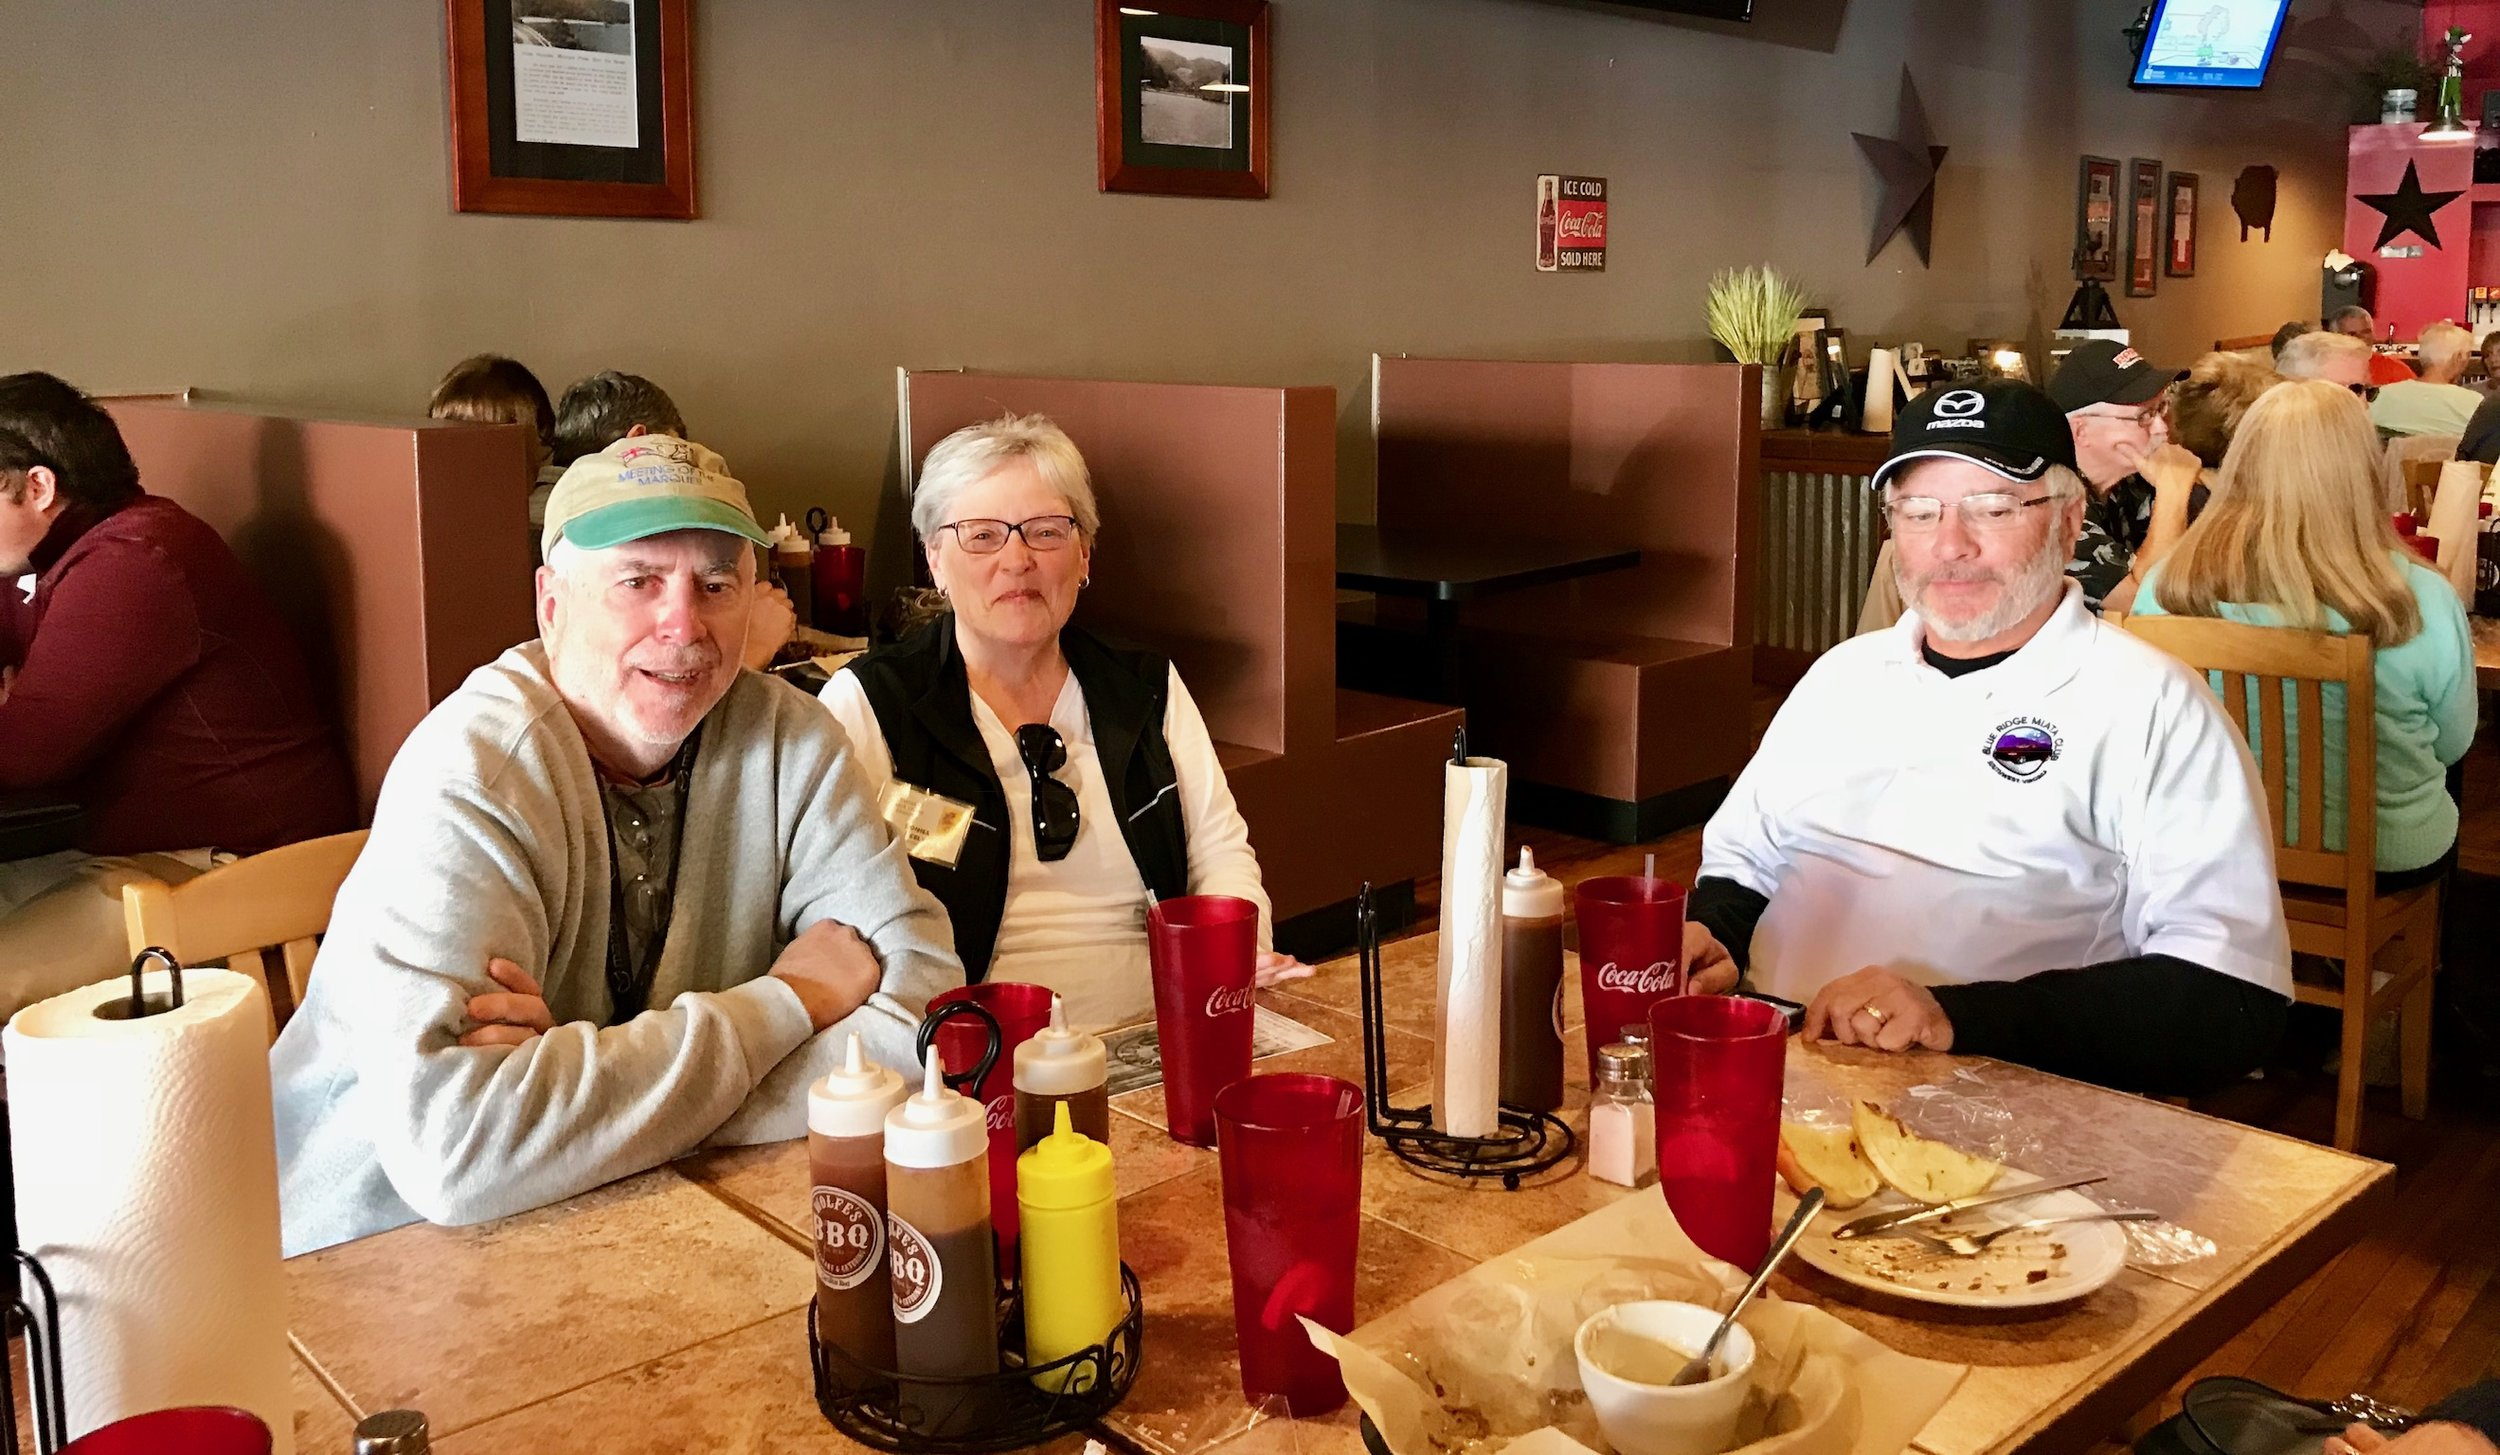 Lunch at Wolfe's BBQ. From left: Joe Neely, Donna Neely, and Bill Mashburn.